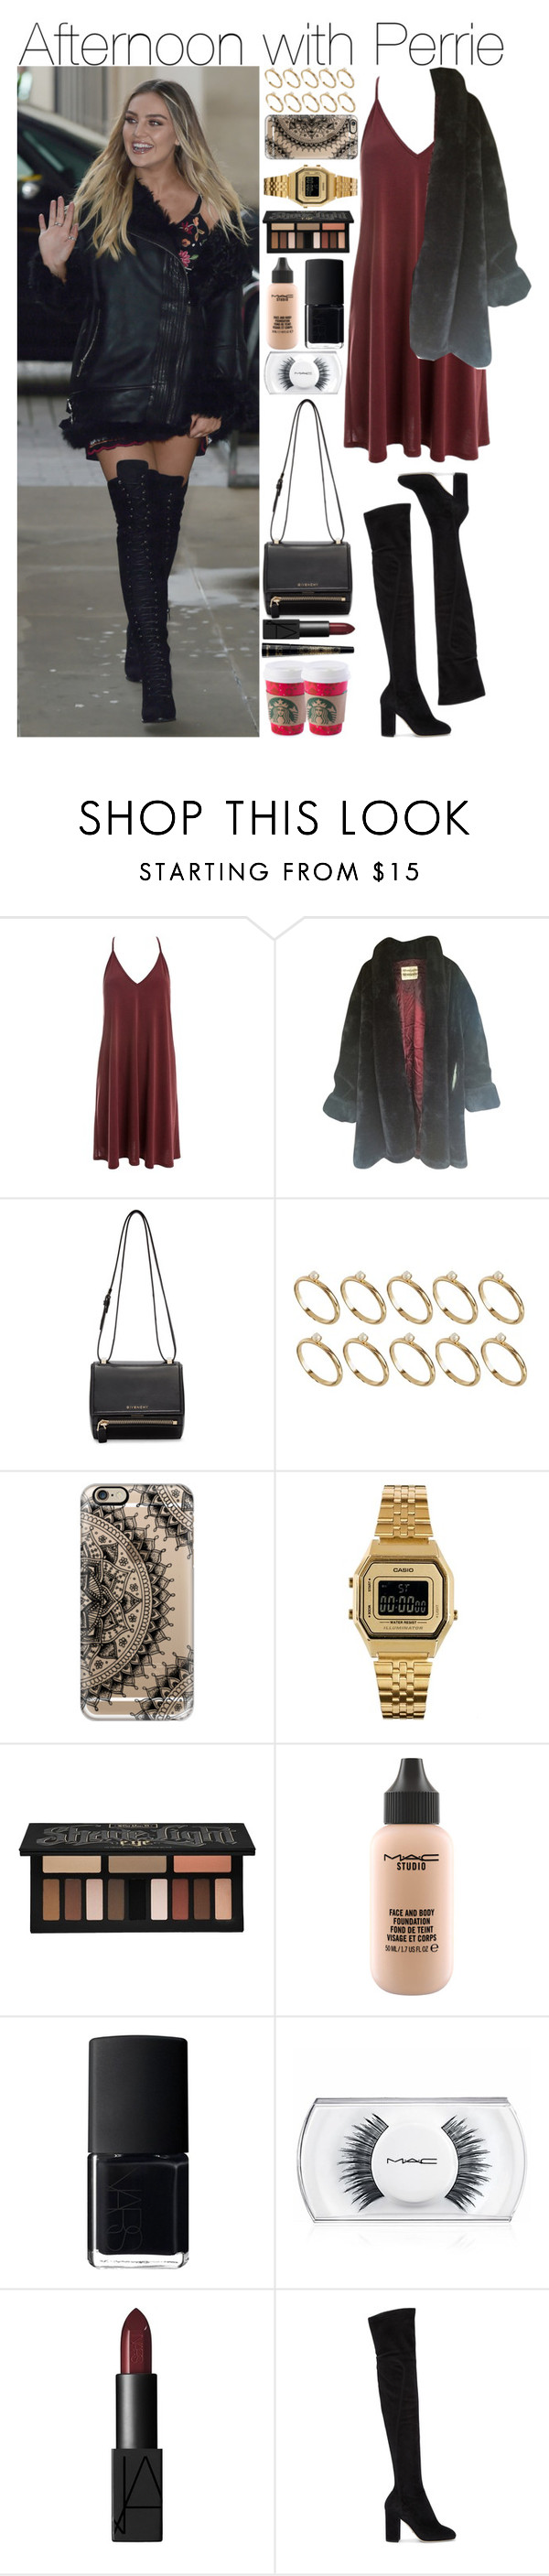 """""""Afternoon with Perrie"""" by mrspayne-1d ❤ liked on Polyvore featuring Sans Souci, Givenchy, ASOS, Casetify, Casio, Kat Von D, MAC Cosmetics, NARS Cosmetics, Dolce&Gabbana and Guerlain"""